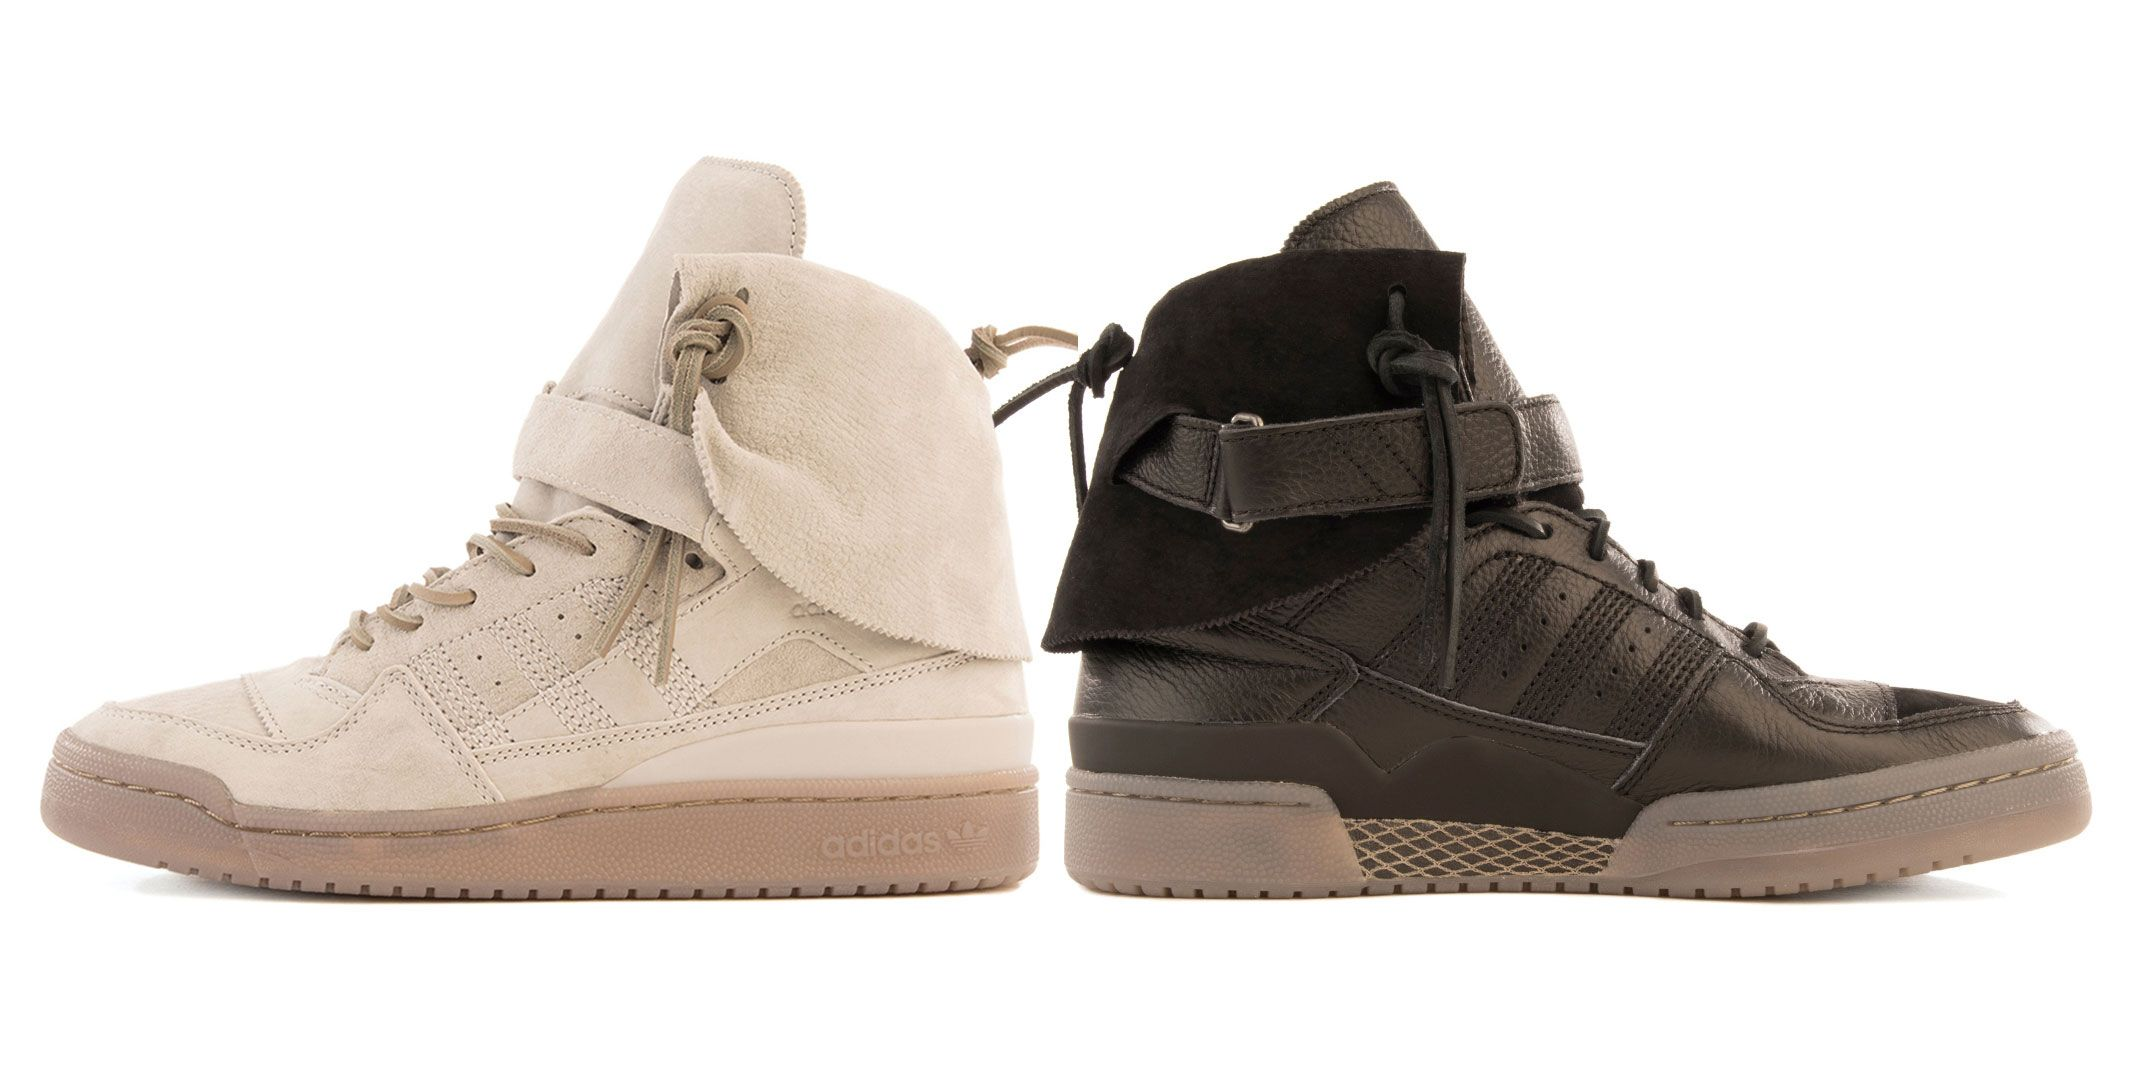 Adidas Has Dropped A Fall Ready Timberland Inspired Forum Hi